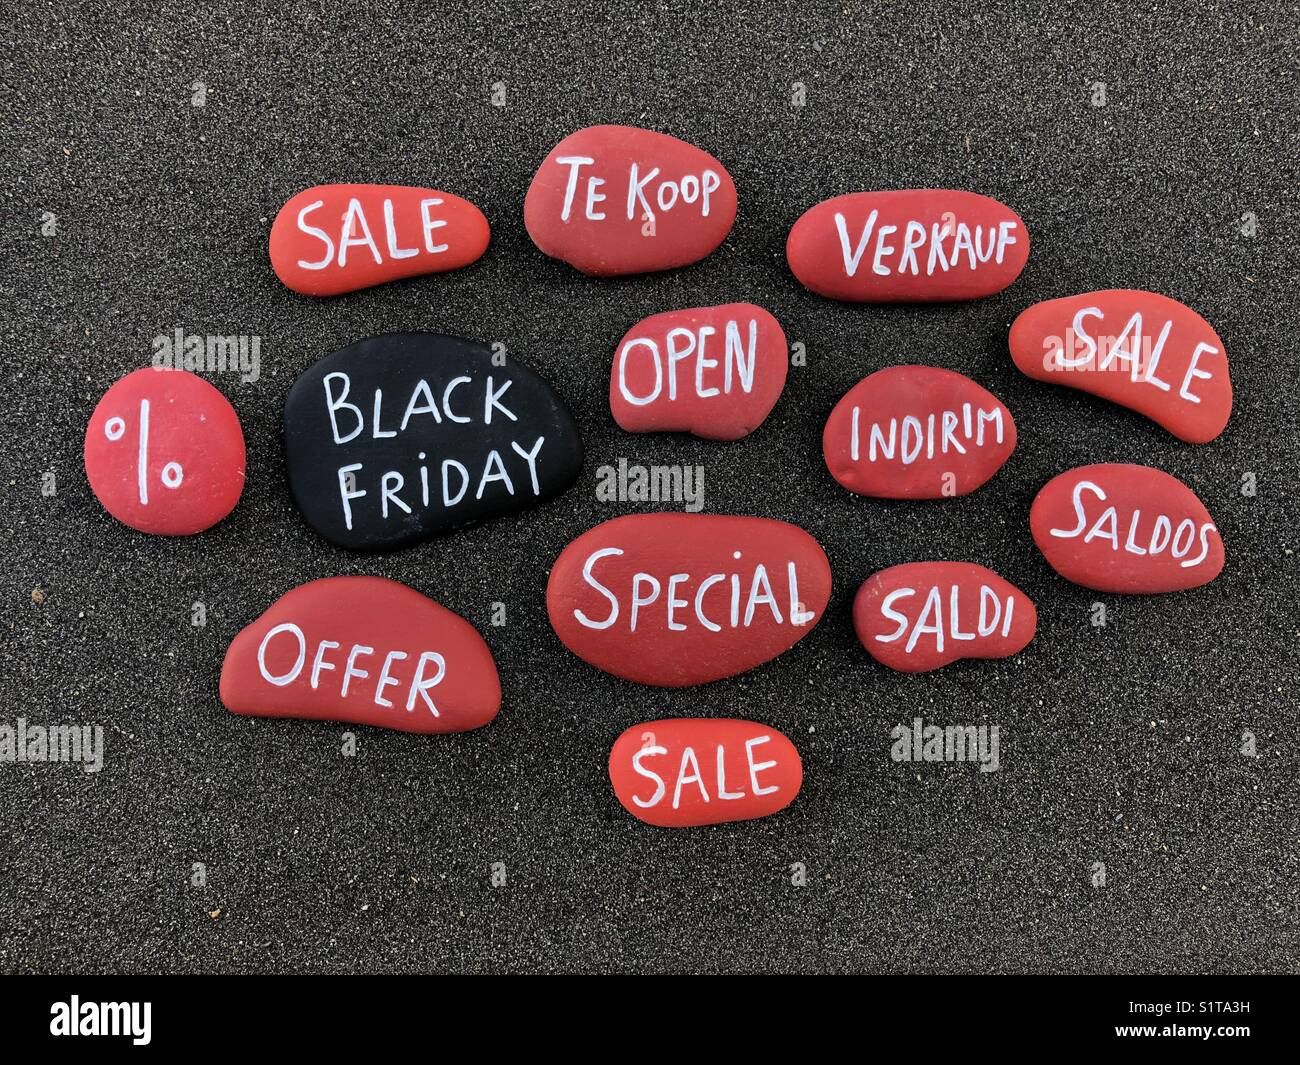 Black Friday - Stock Image